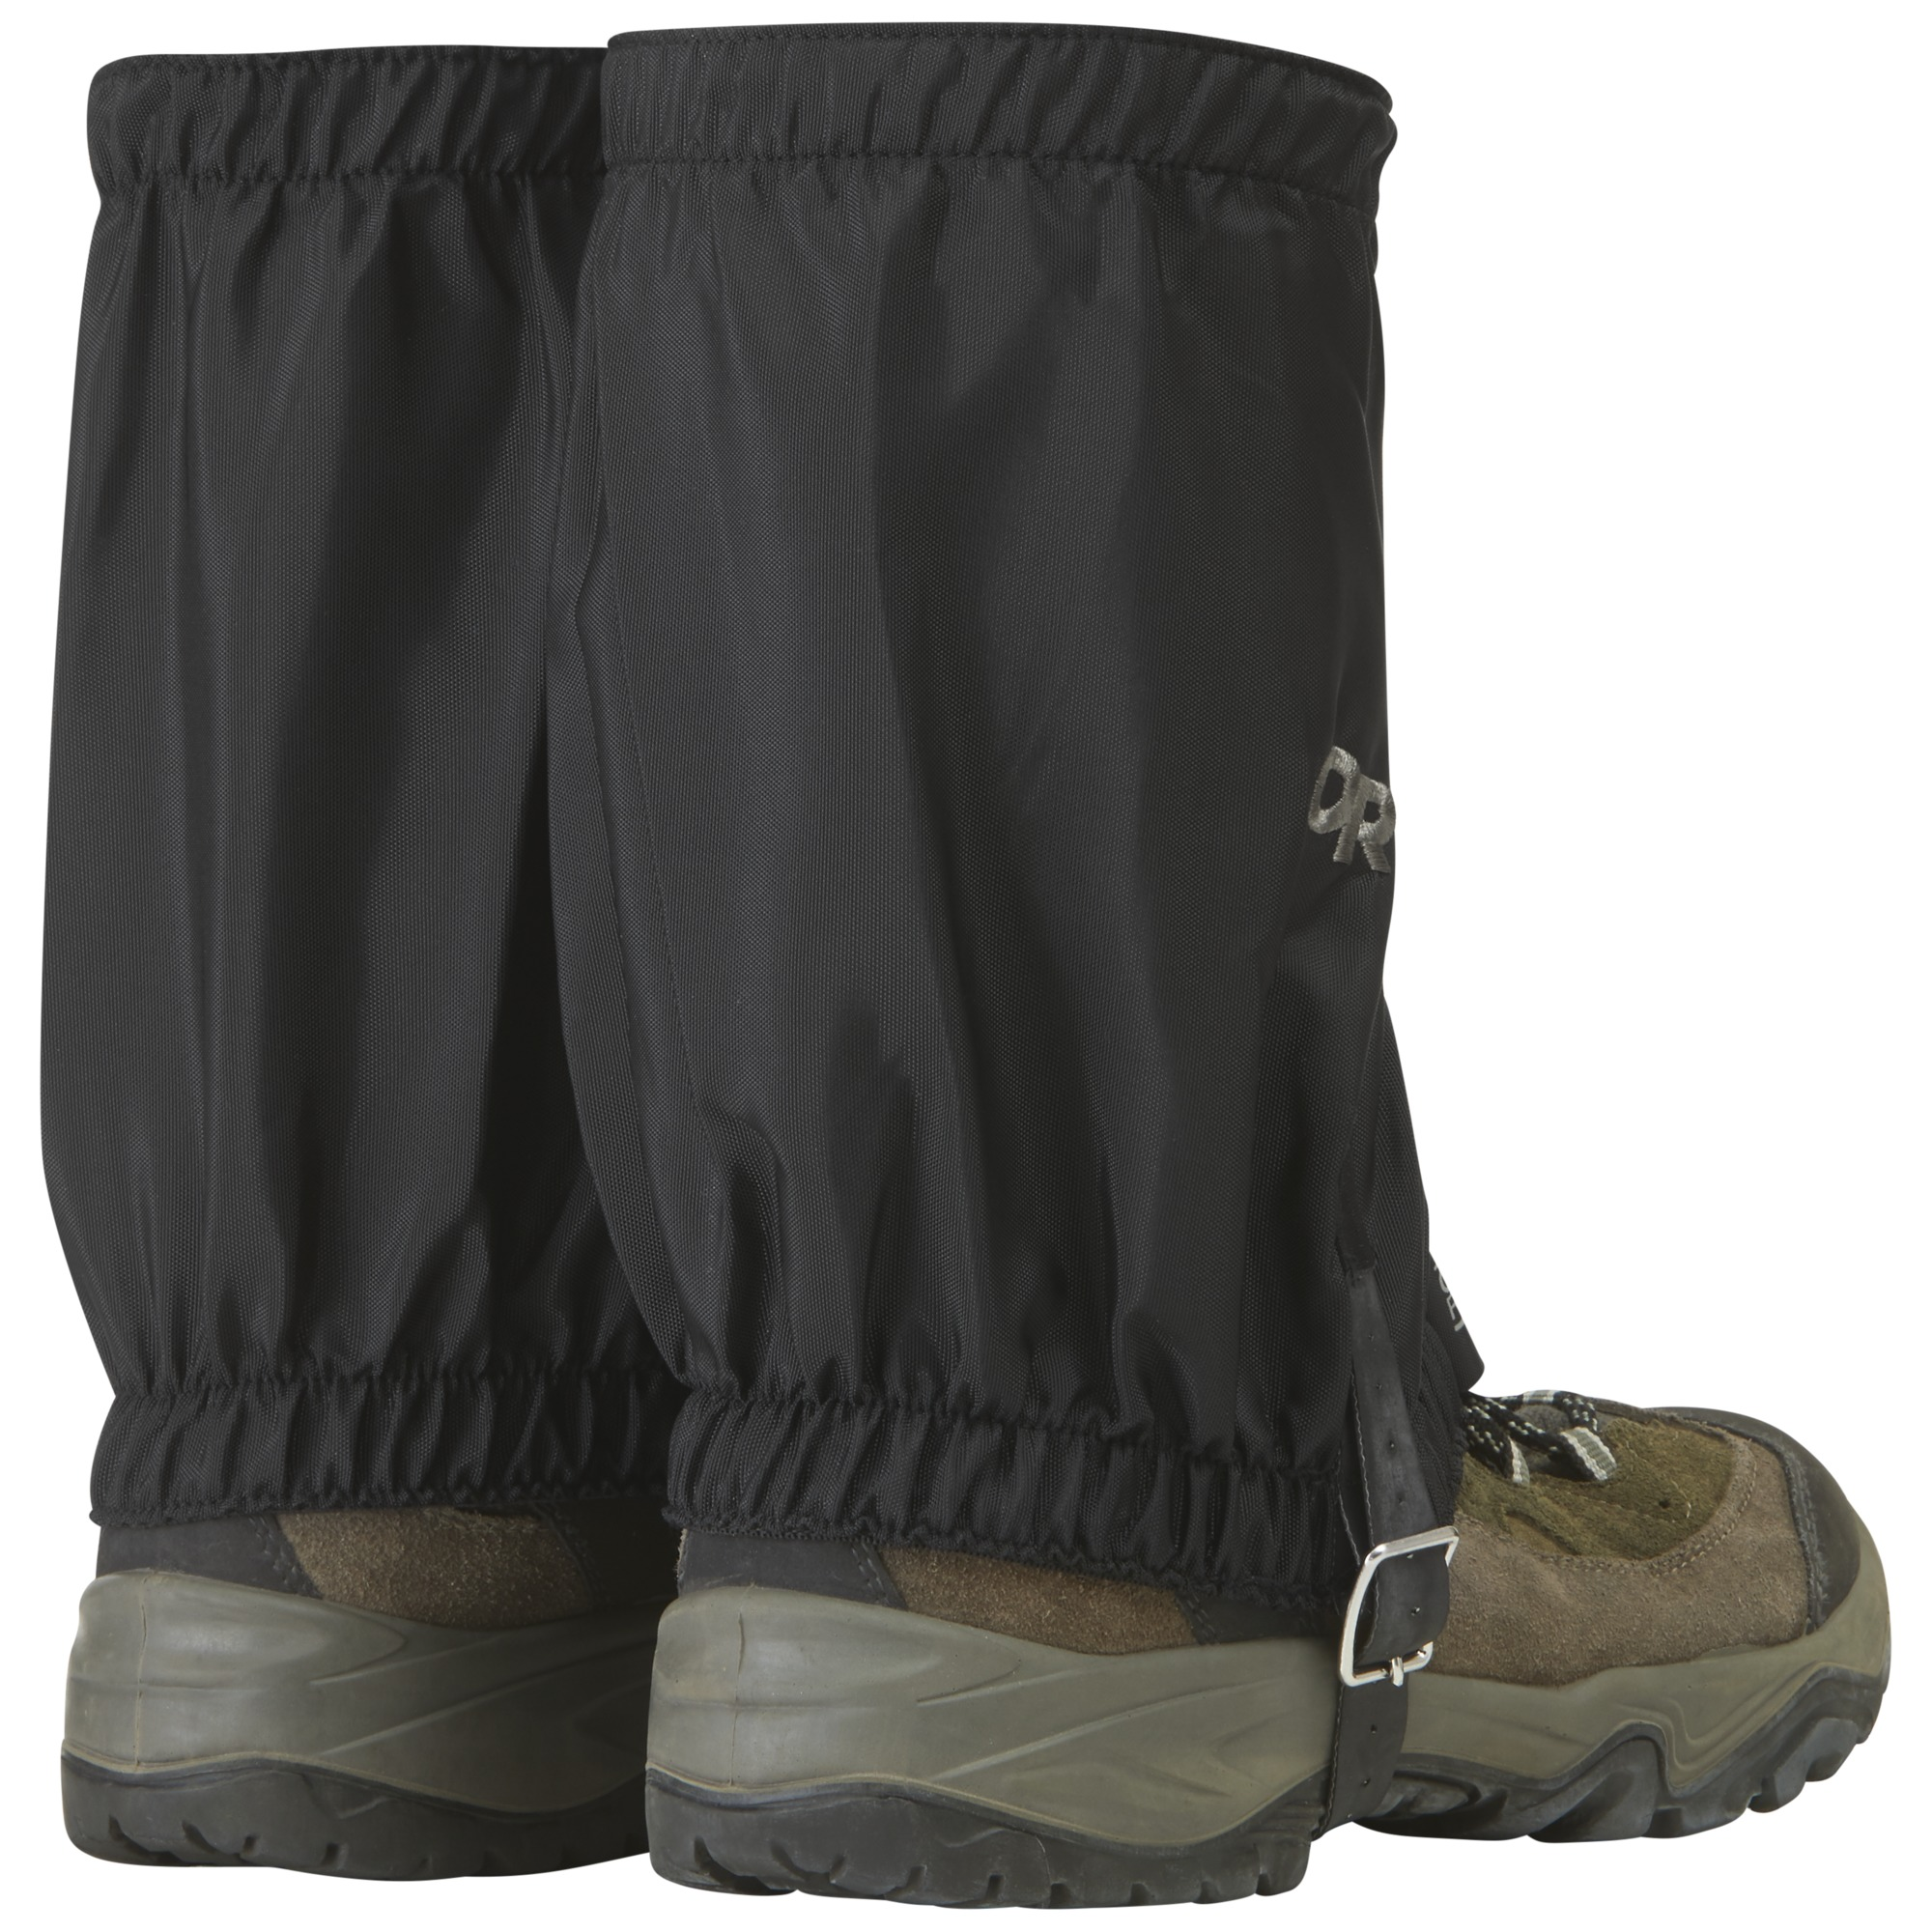 4a001af544 Rocky Mountain Low Gaiters - black